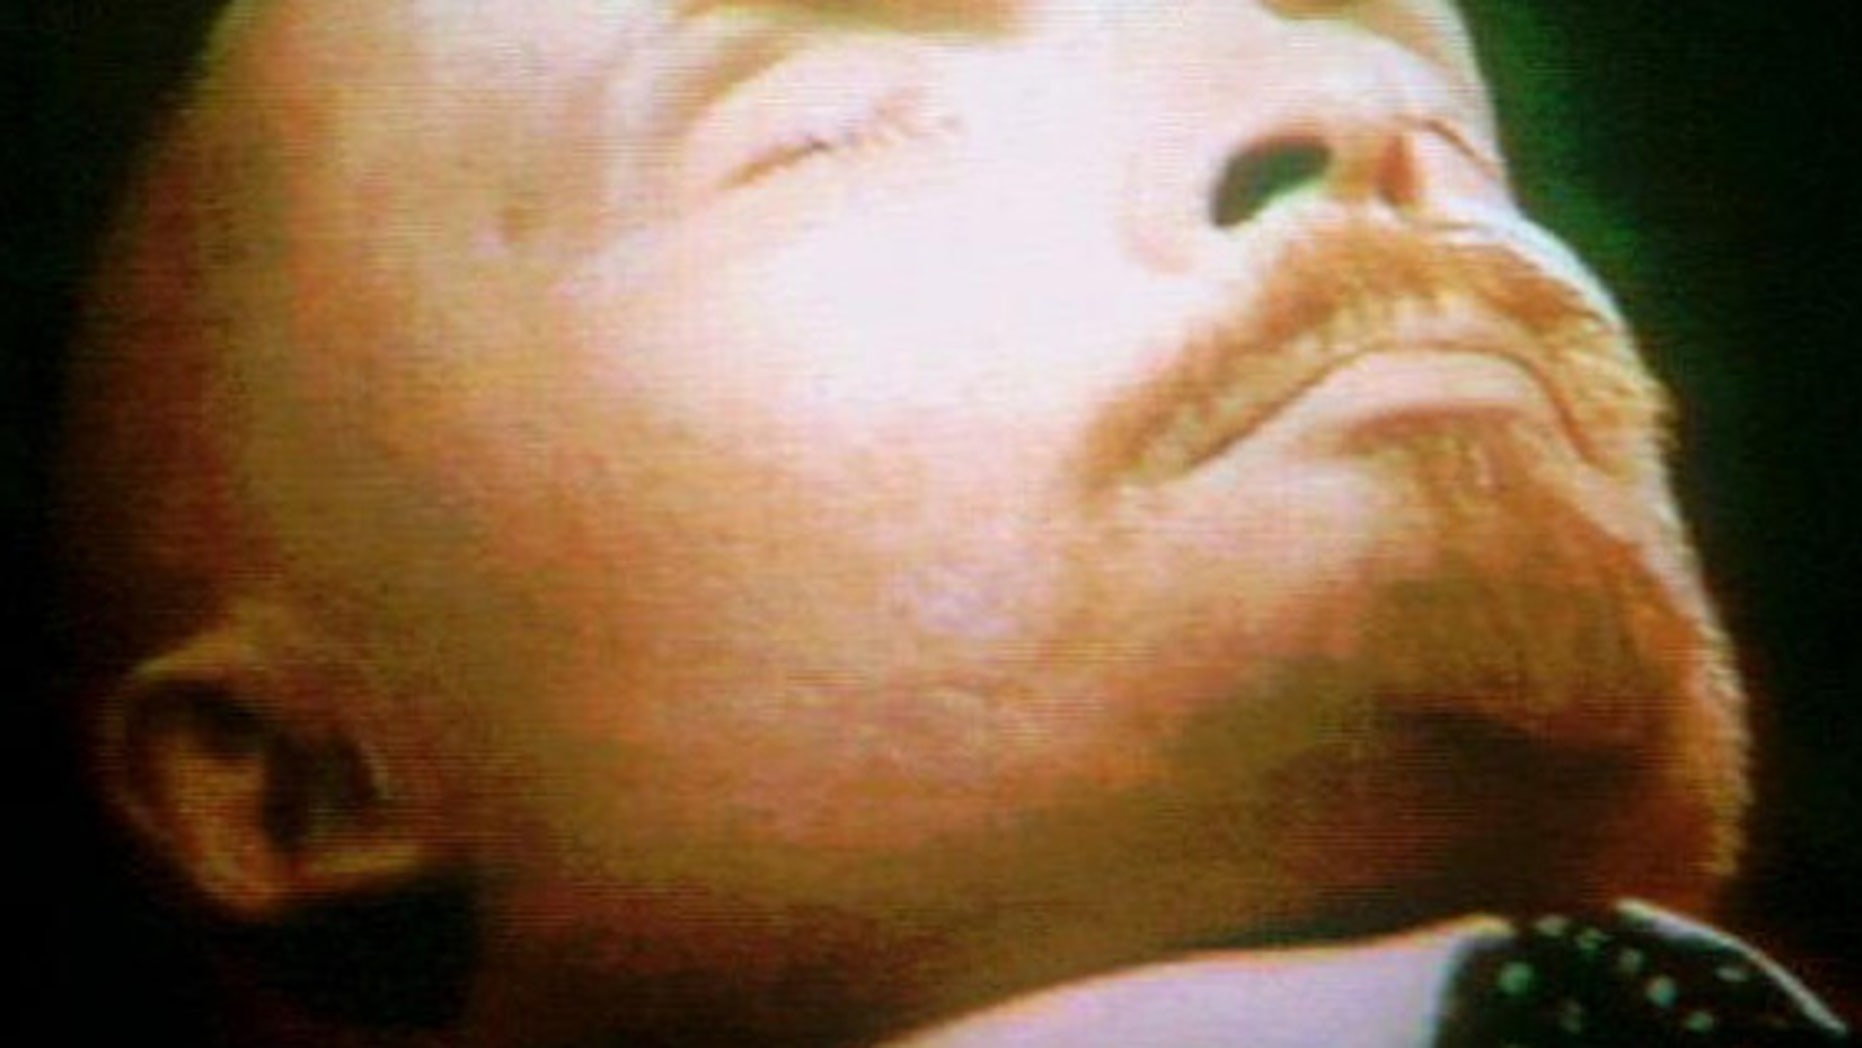 The embalmed body of Vladimir Lenin, who founded the Soviet Union, lies on public display in a Red Square mausoleum.